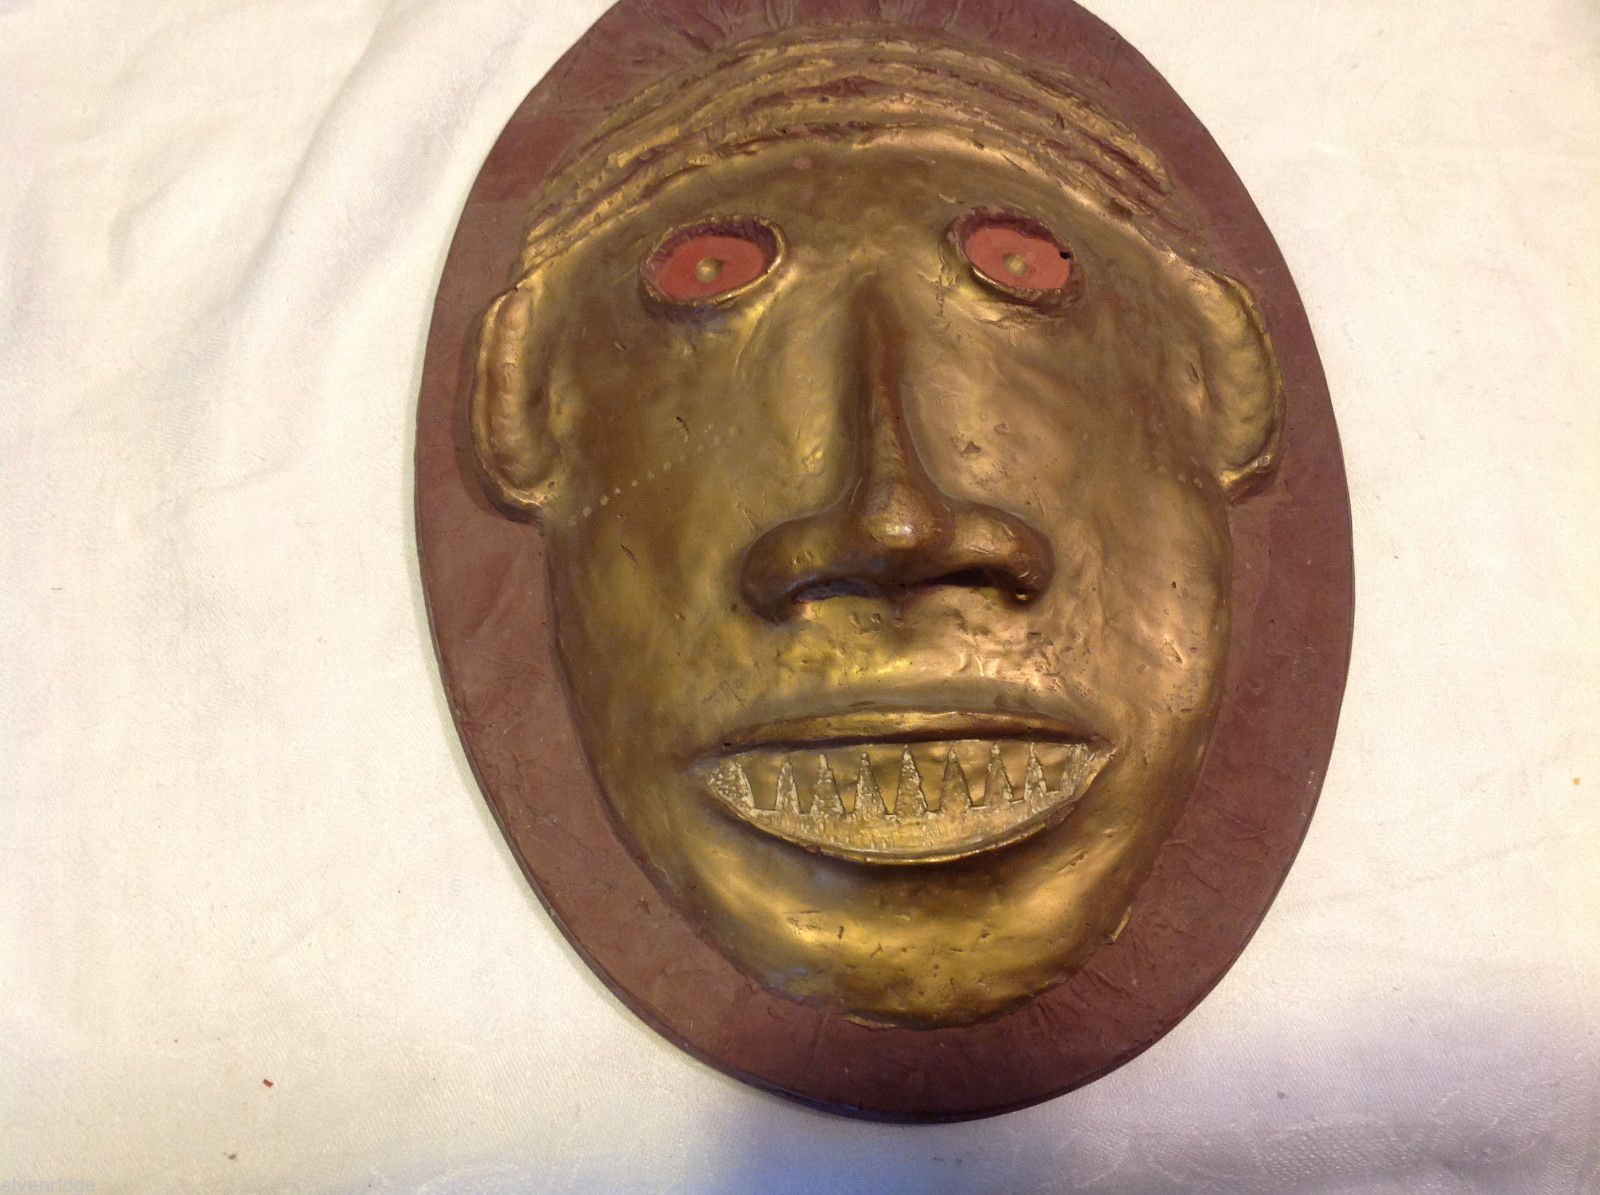 Hand made decorative wall art mask plaster cast and painted signed